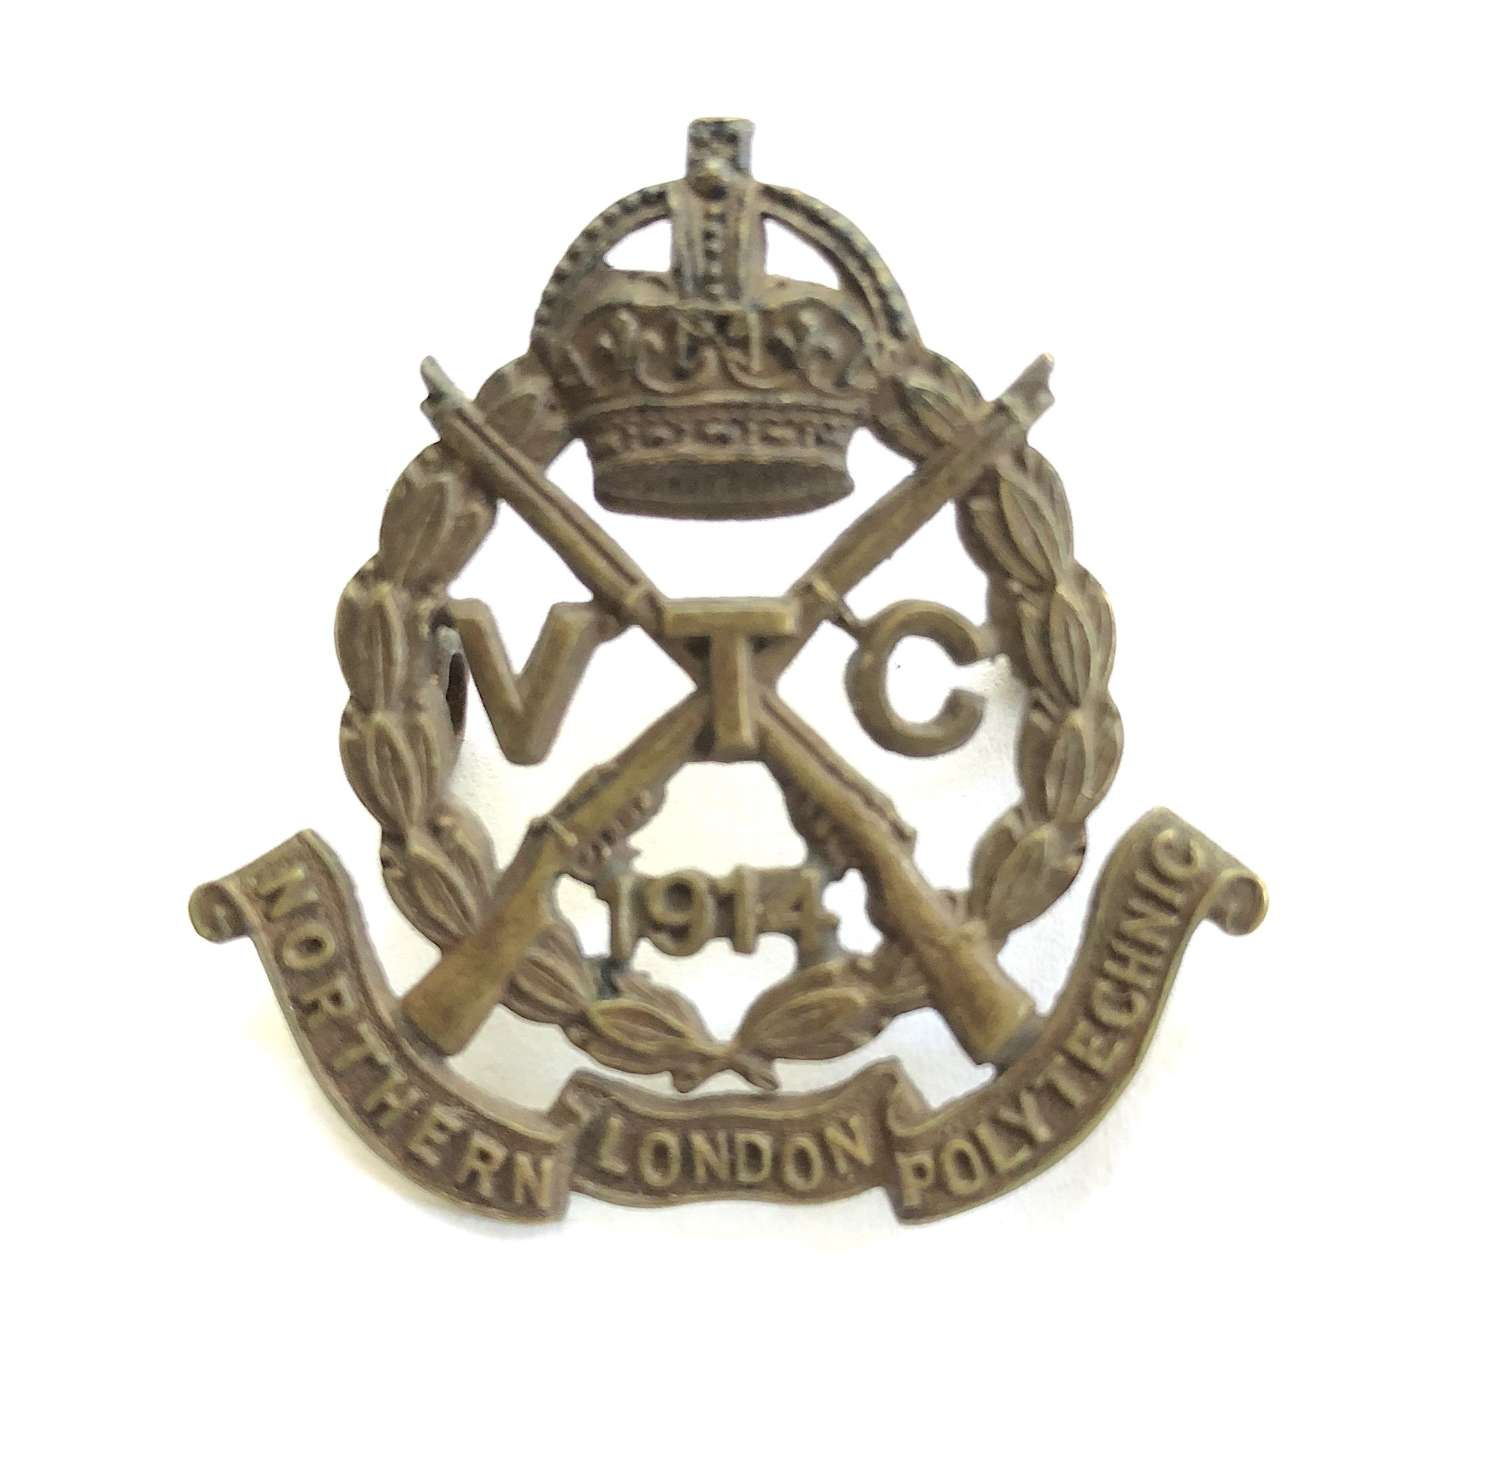 Northern London Polytechnic VTC rare 1914 bronze cap badge